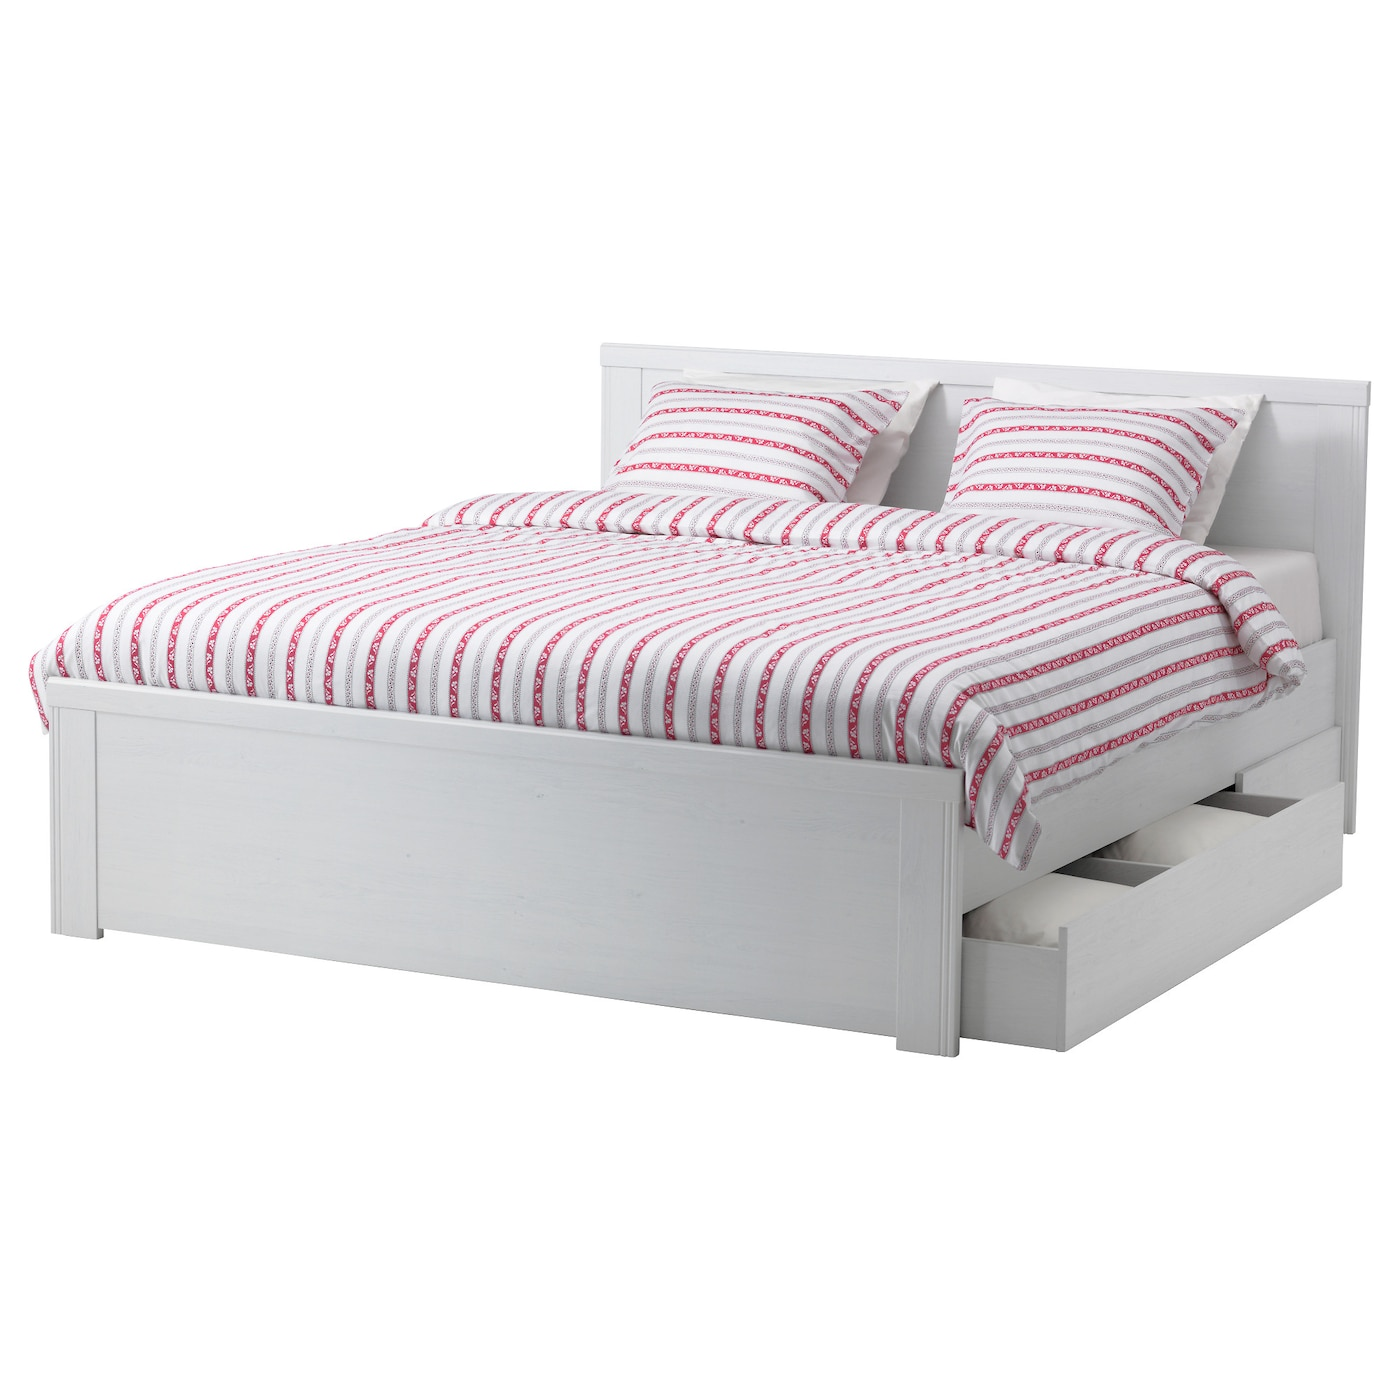 Brusali bed frame with 2 storage boxes white 140x200 cm ikea for Double bed with storage and mattress